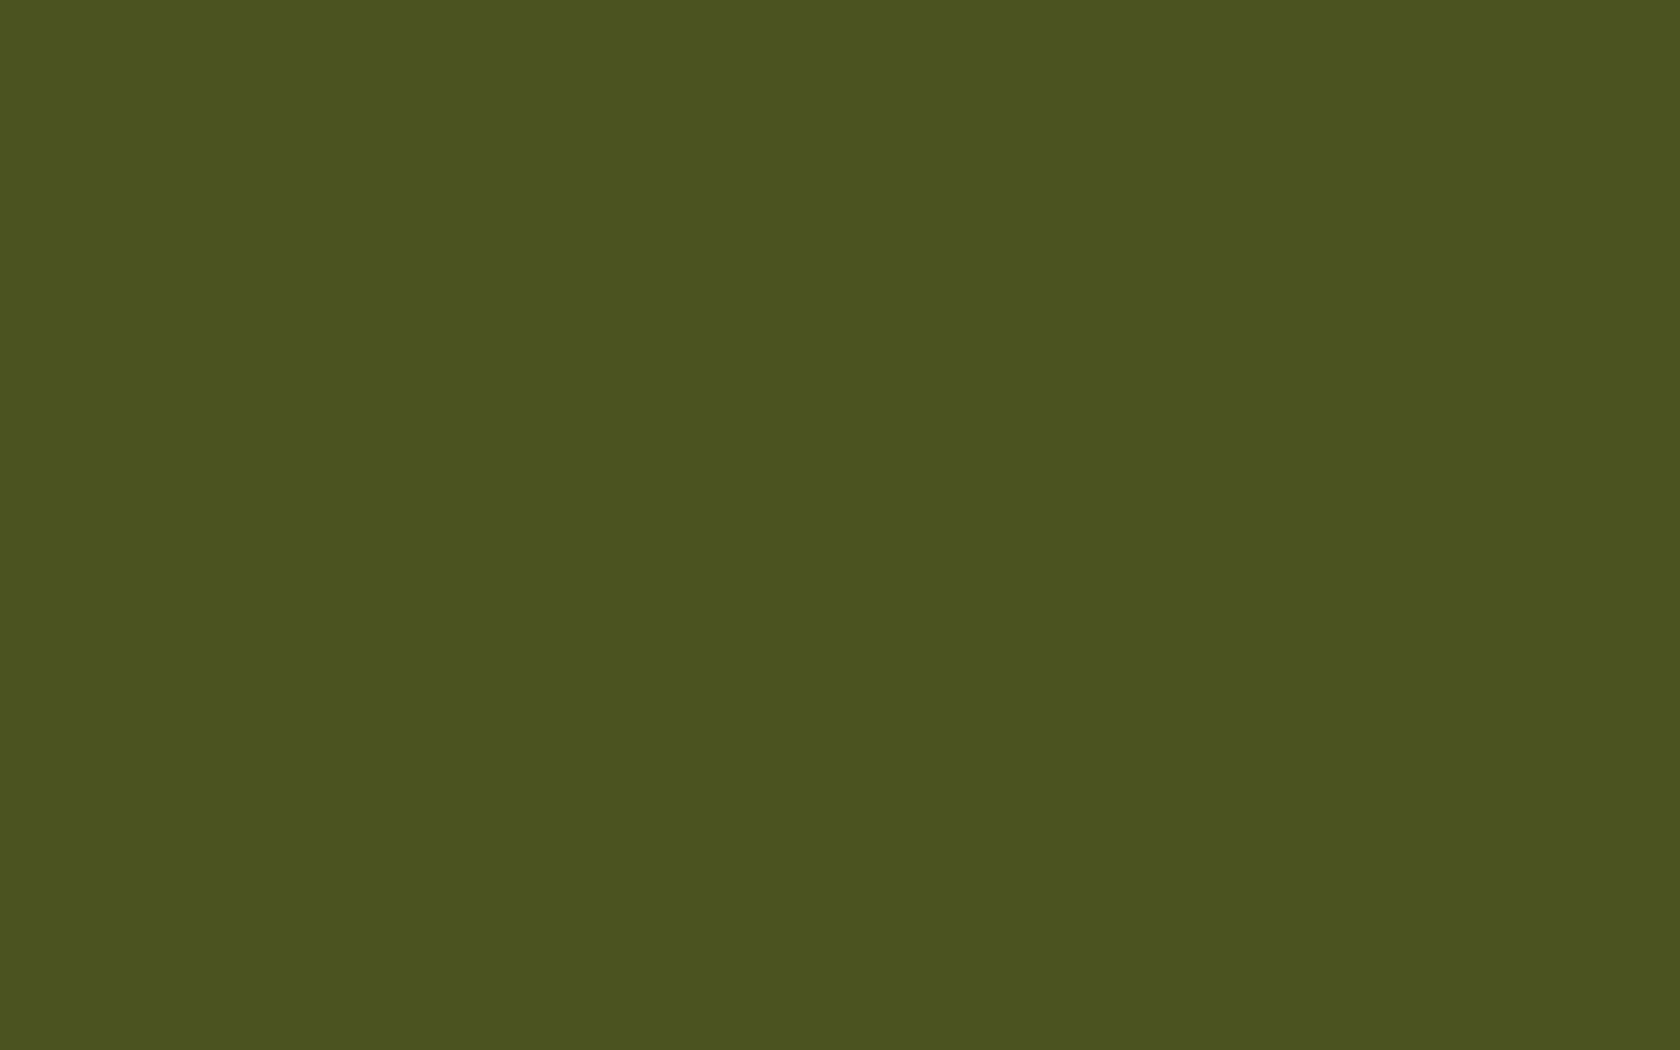 1680x1050 Army Green Solid Color Background